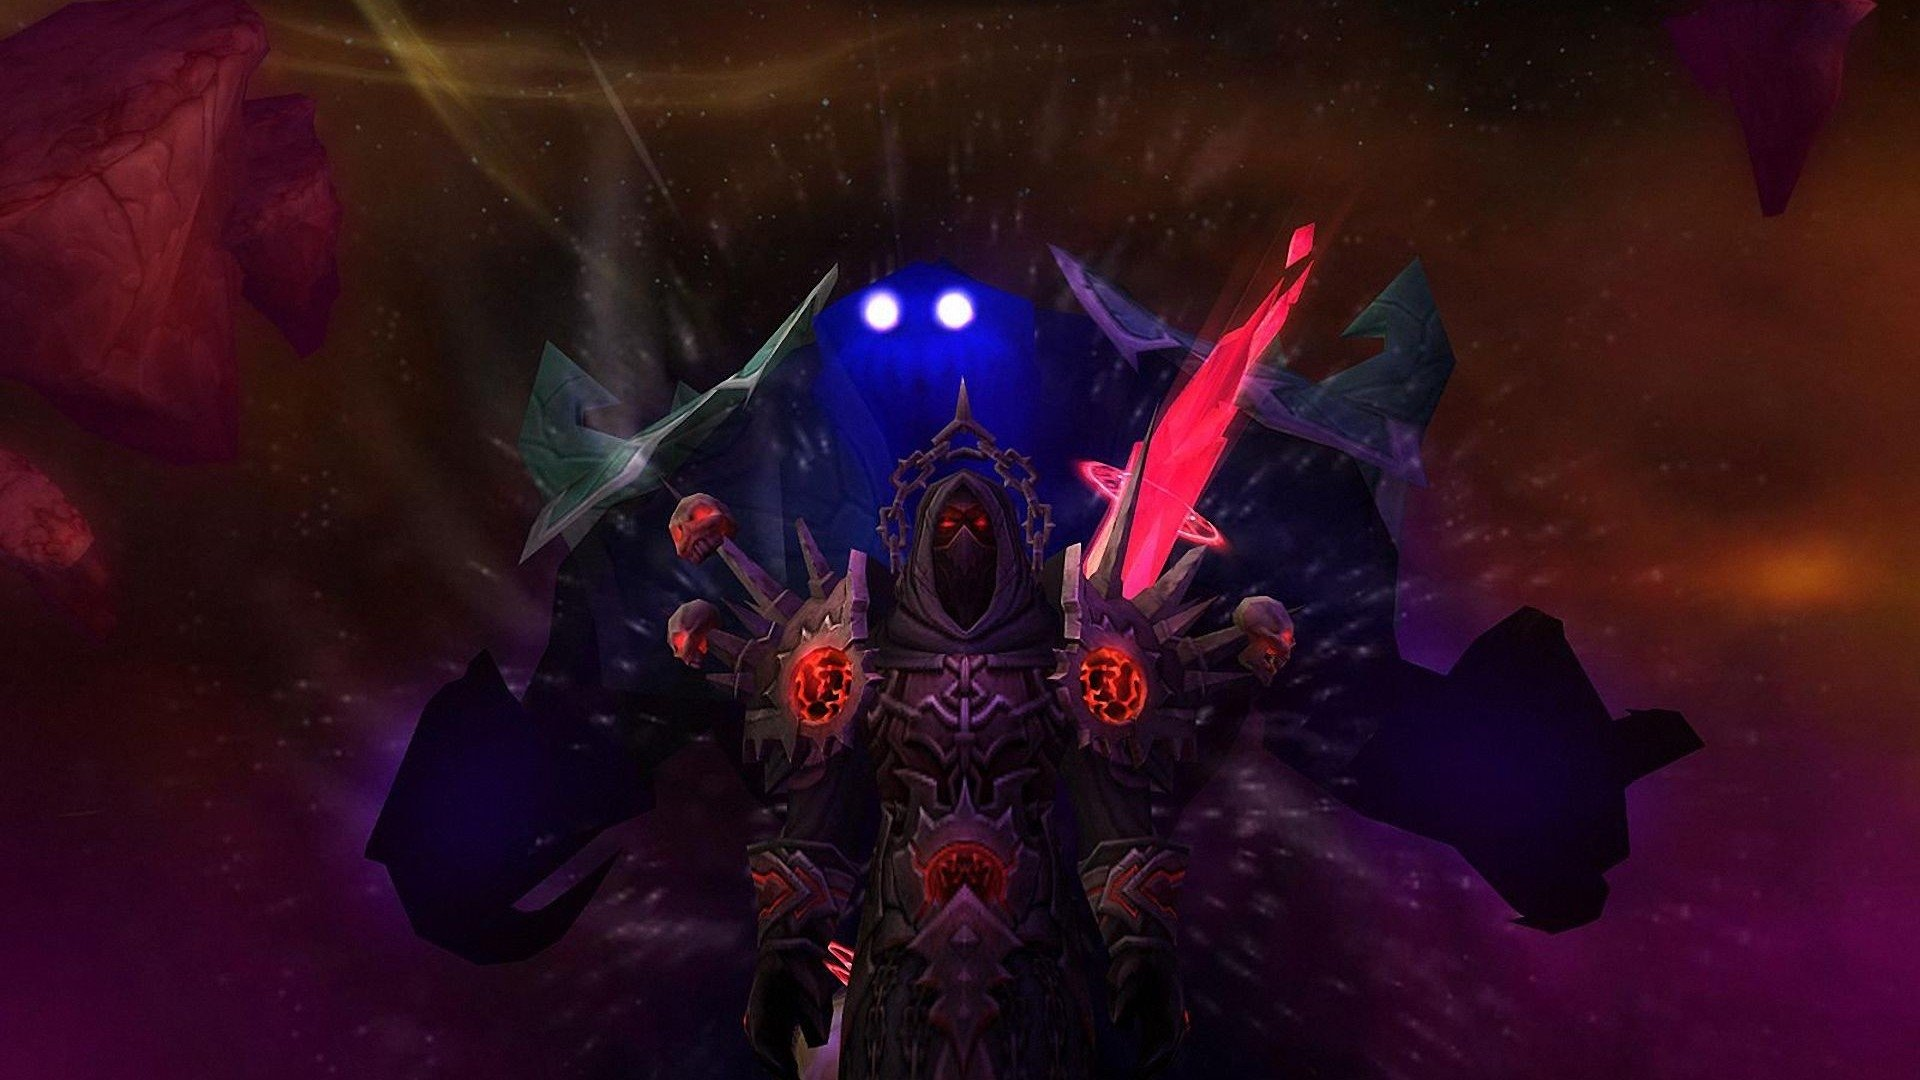 World Of Warcraft The Burning Crusade Warlock Fondo De